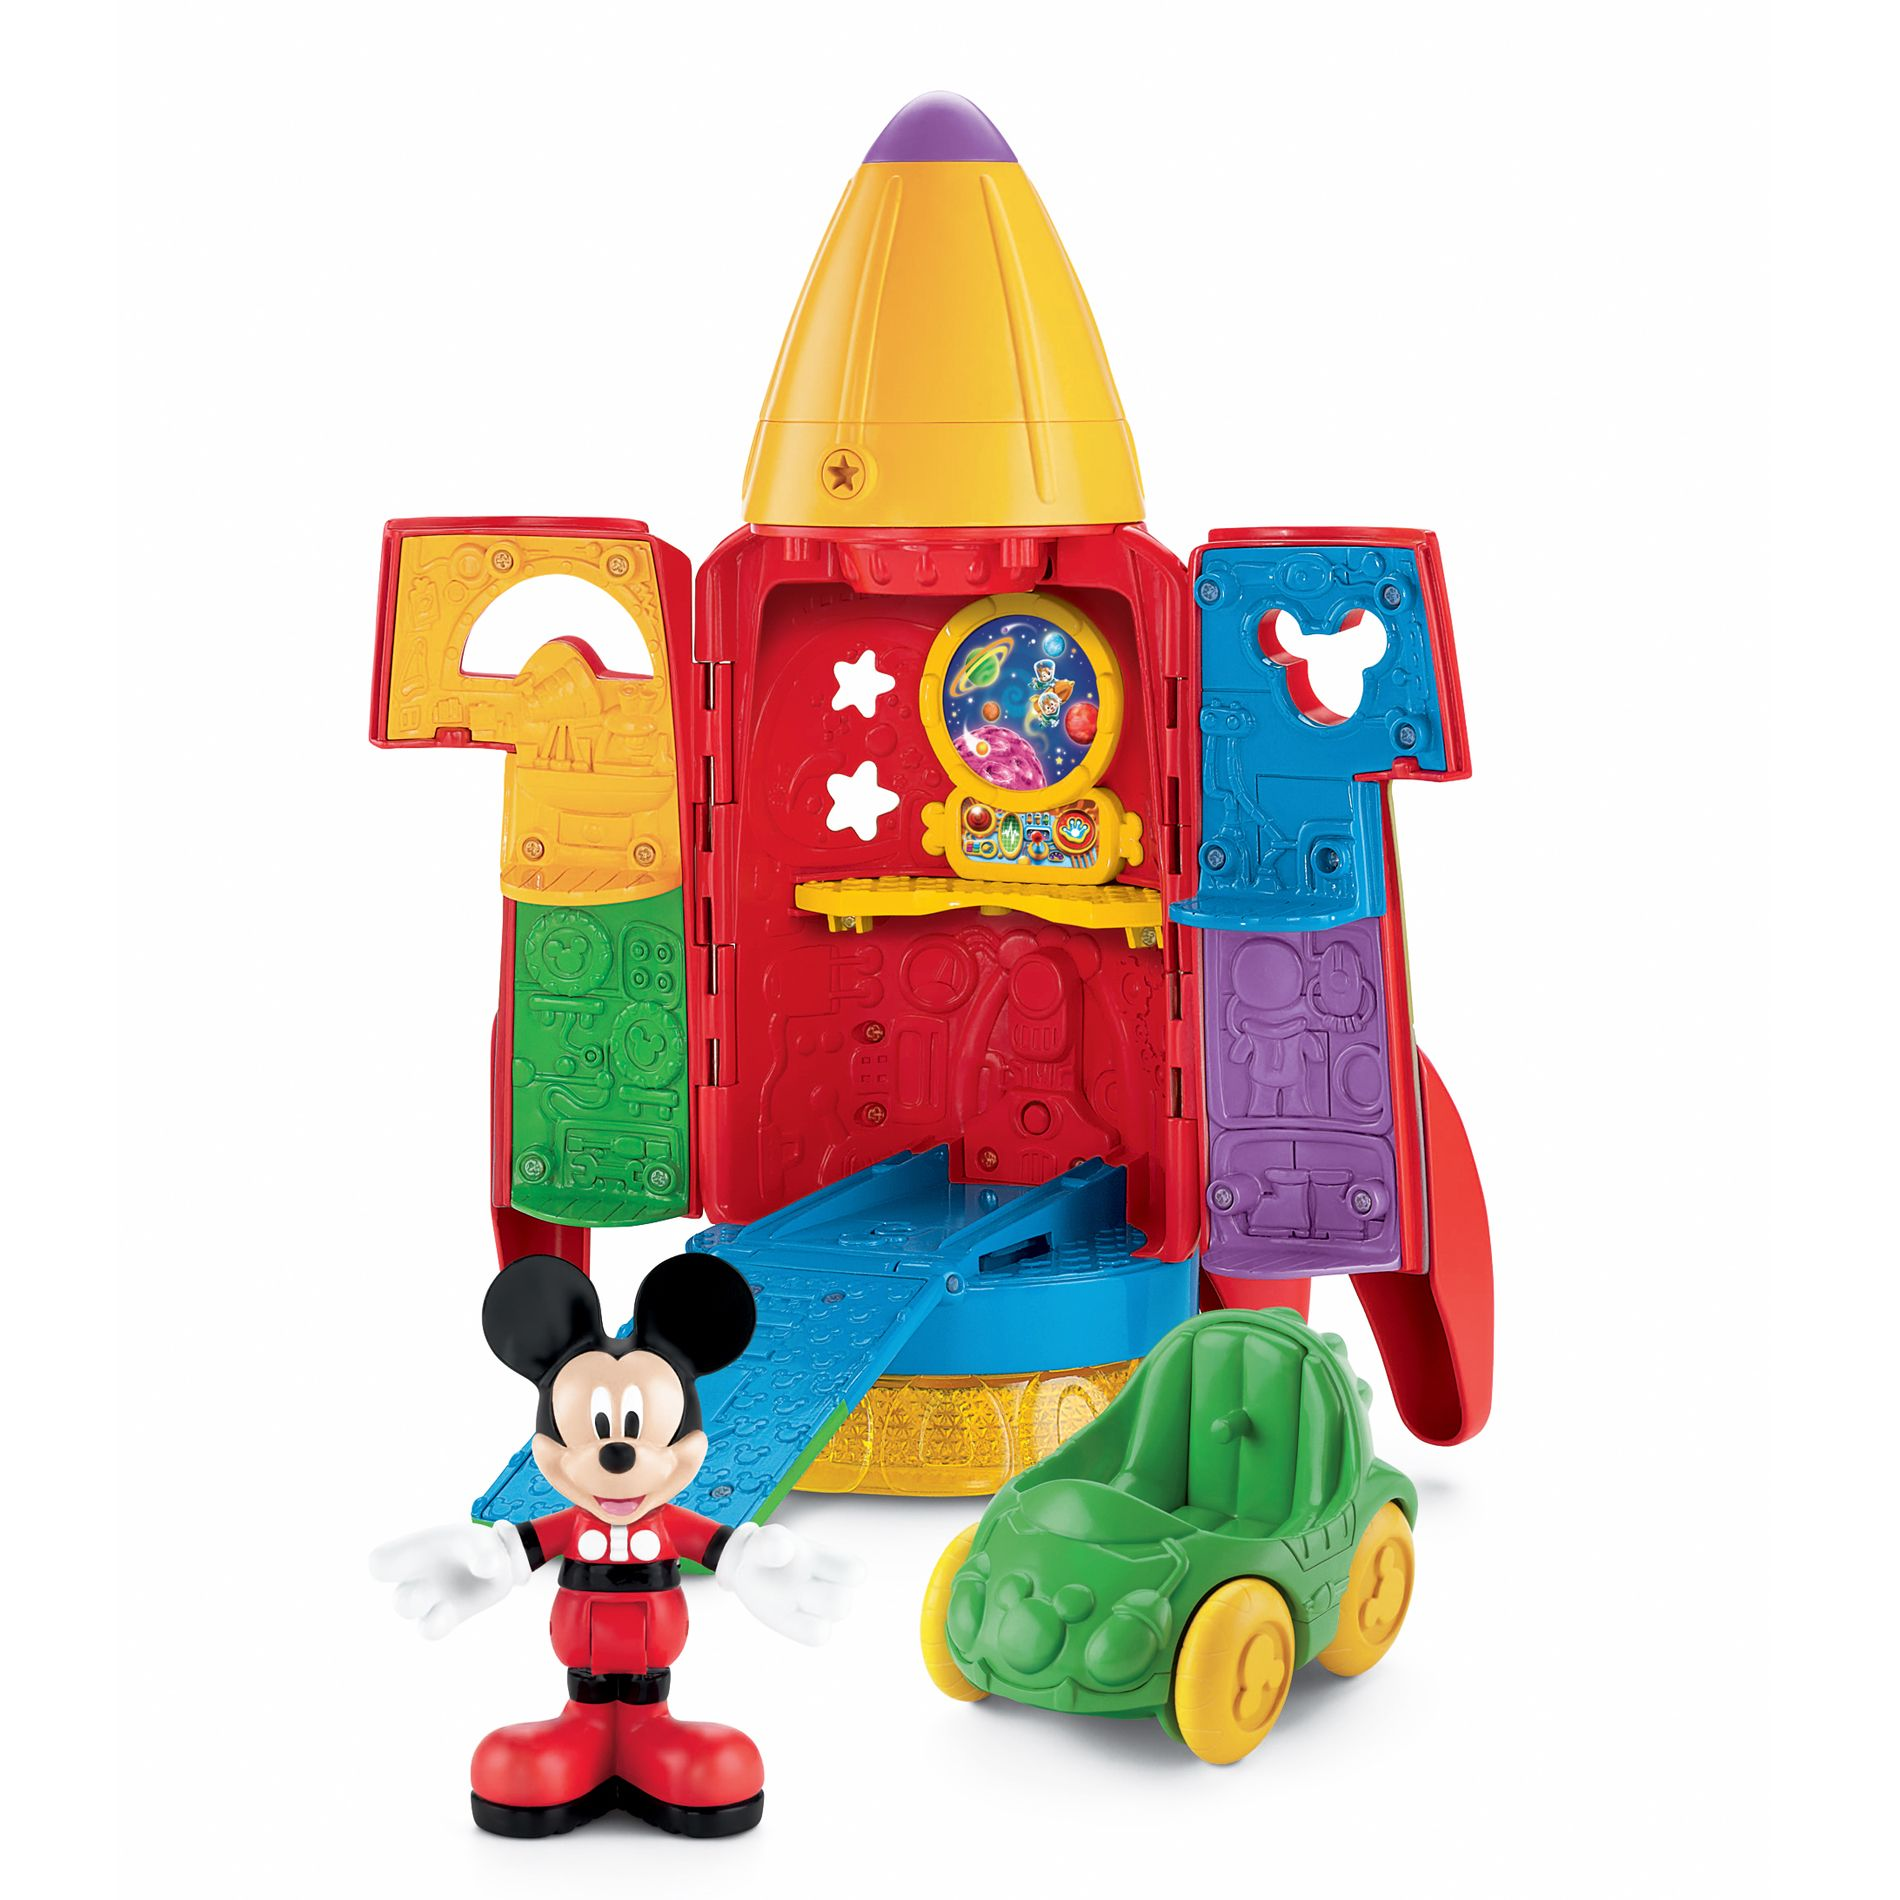 Giochi Mickey Mouse Disney Mickey 39s Blast Off Rocket Toys And Games Dolls